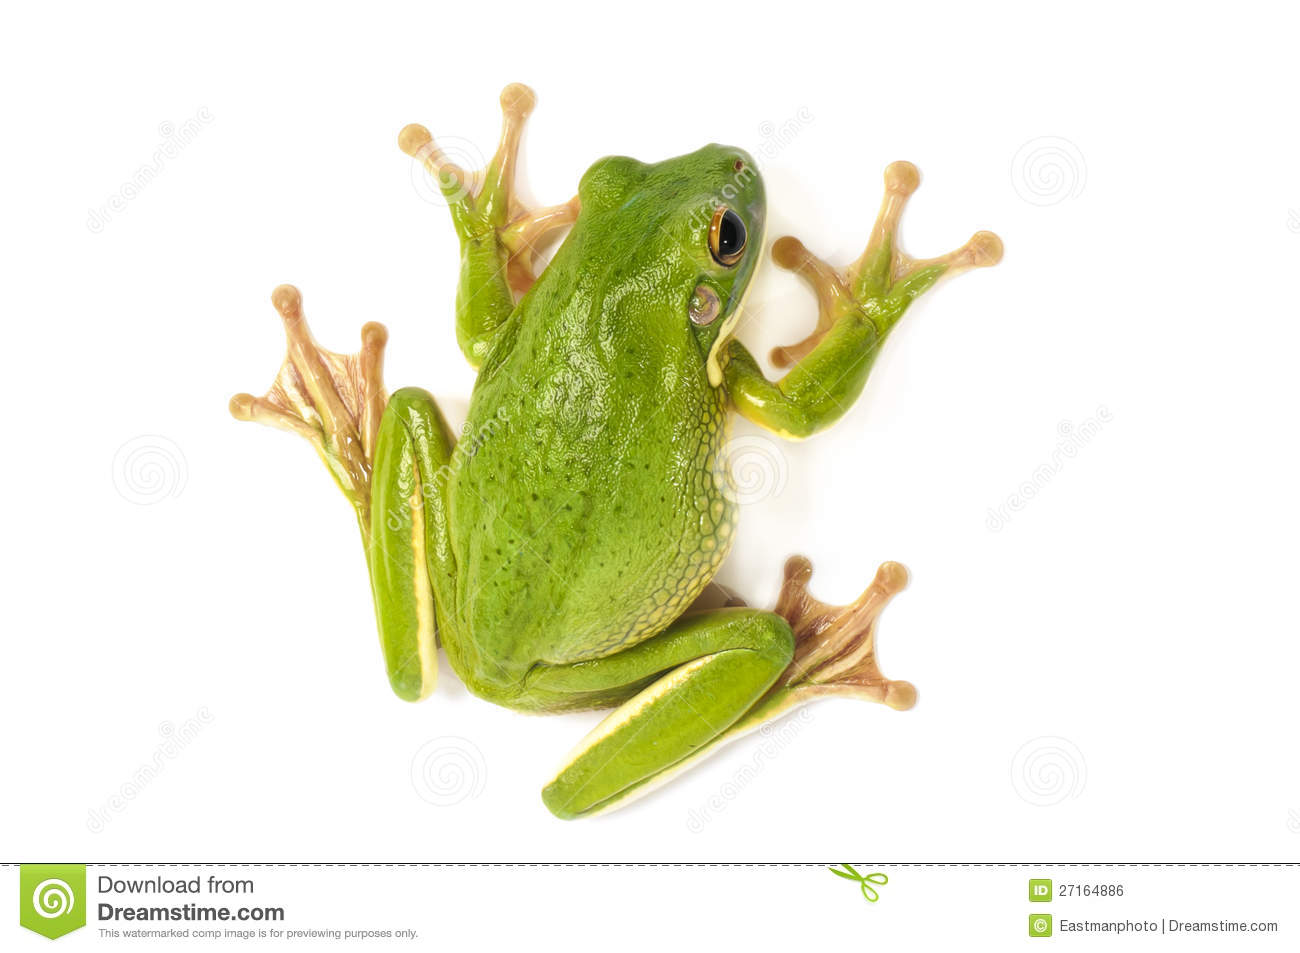 White-lipped Tree Frog clipart #7, Download drawings